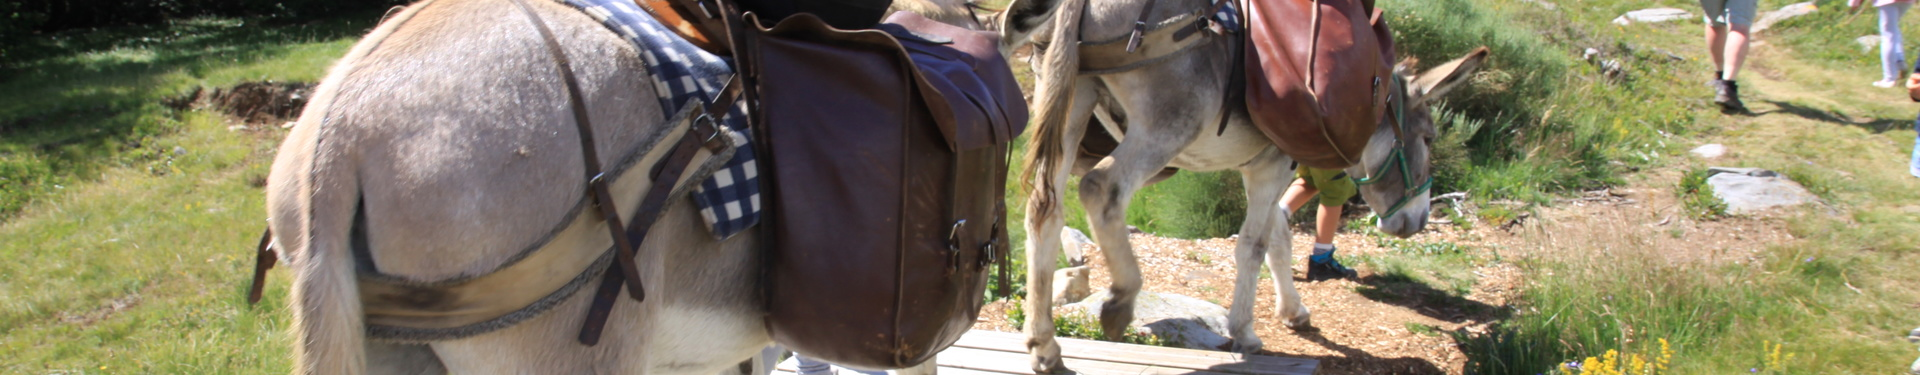 Hiking with a donkey in Auvergne